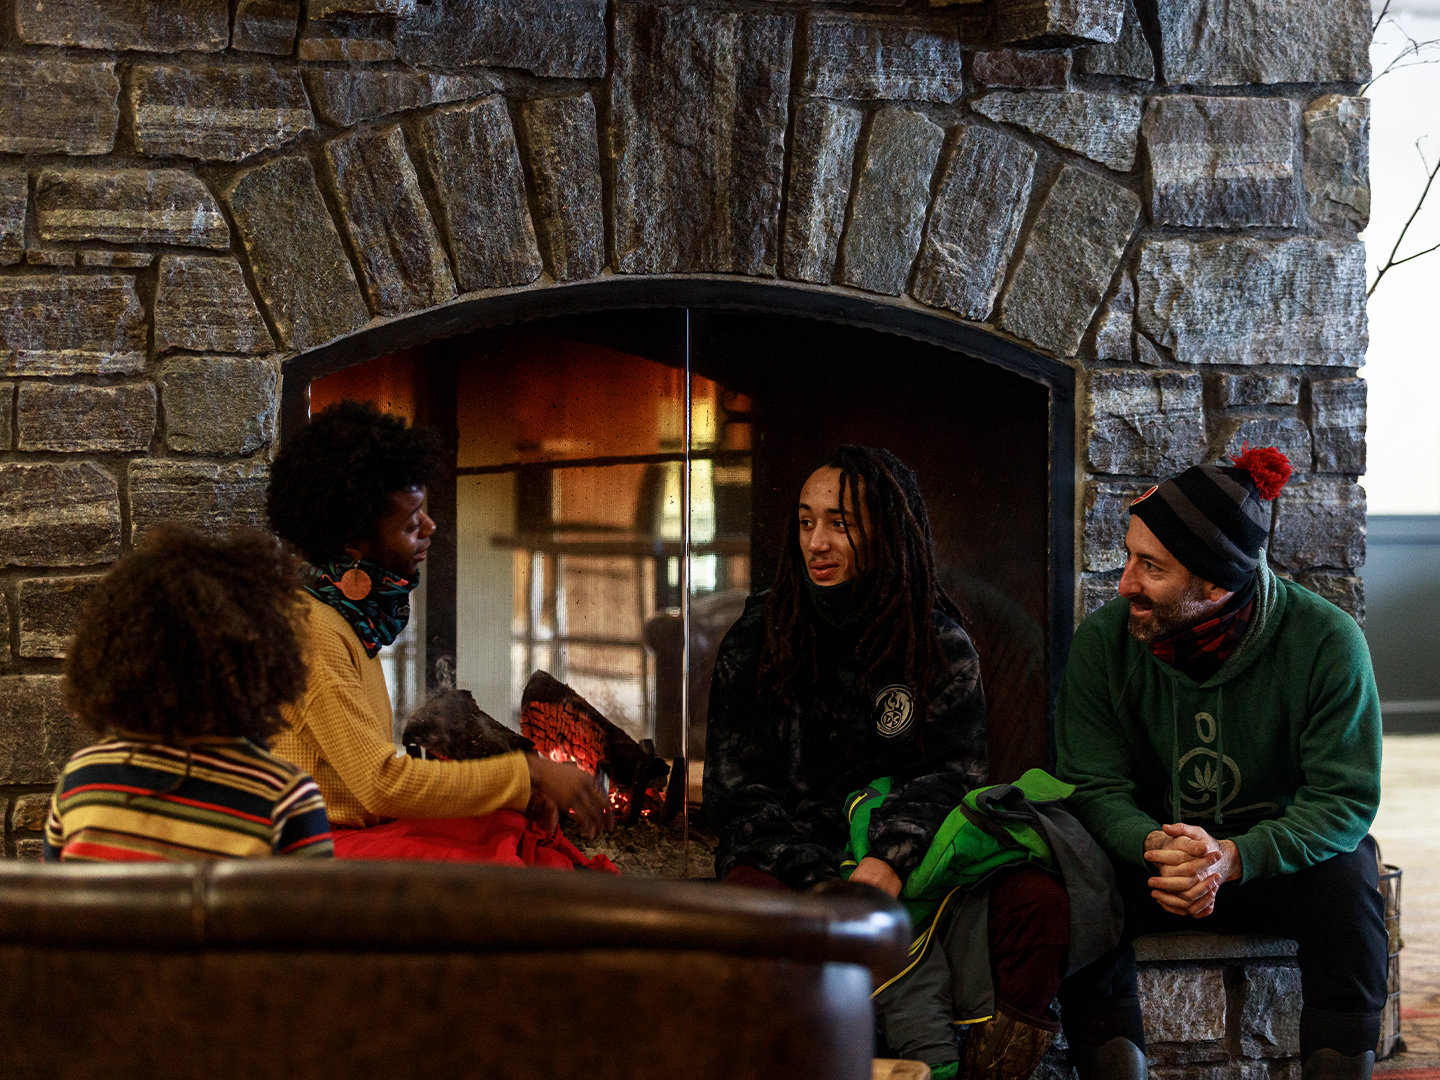 Family enjoying the warm fire at the Killington Grand Hotel while lodging on resort with a ski and stay package